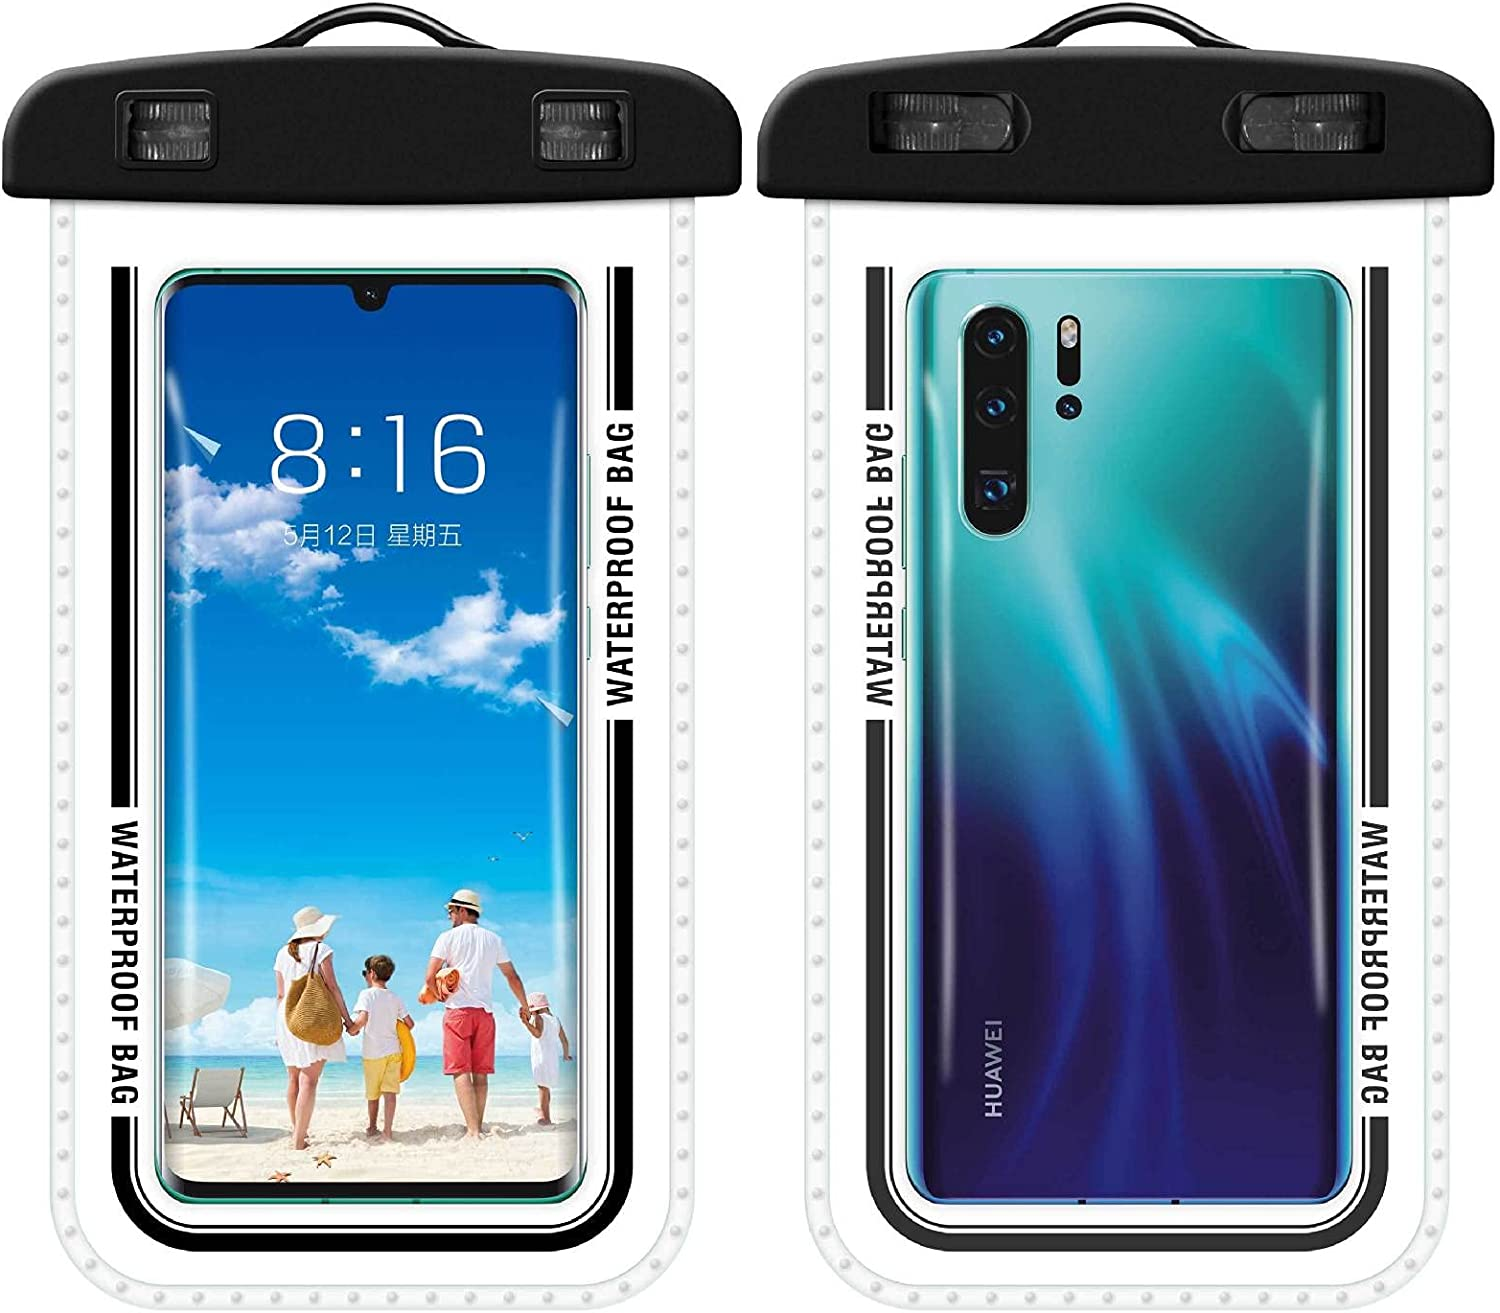 2Pieces Universal Waterproof Phone Pouch Underwater Clear Phone Case Cellphone Dry Bag Pouch with Lanyard Outdoor Beach Swimming Snorkeling for Smartphone up (Black)